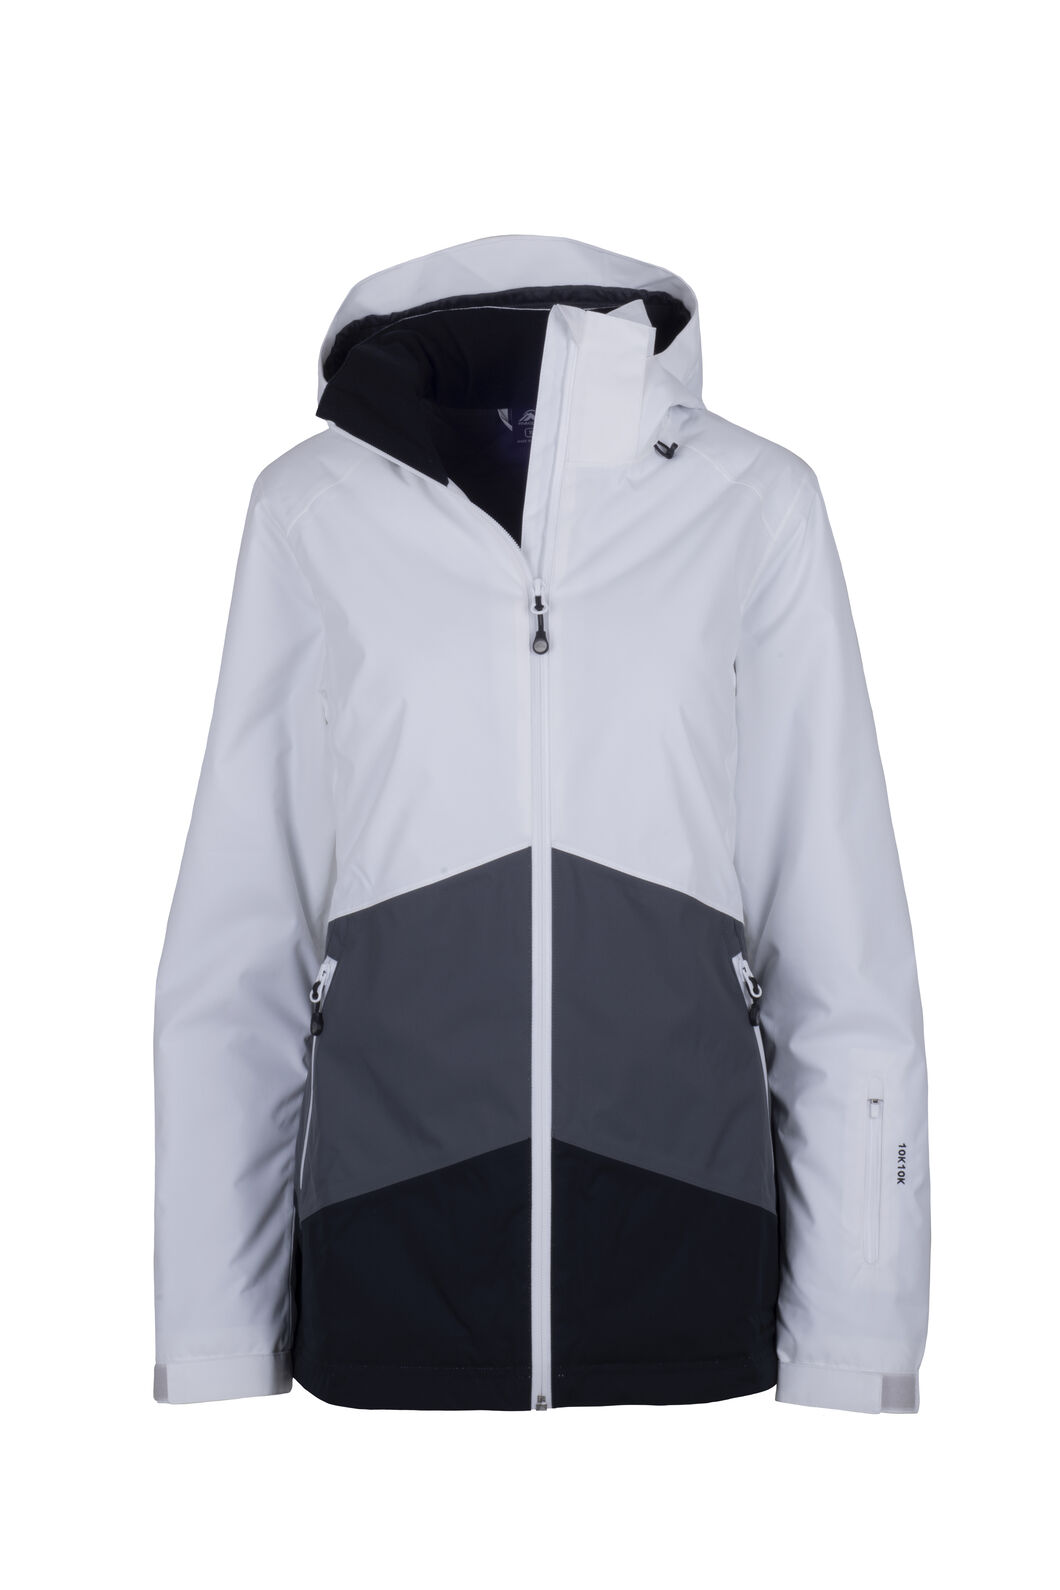 Macpac Slope Jacket - Women's, Iron Gate/White, hi-res